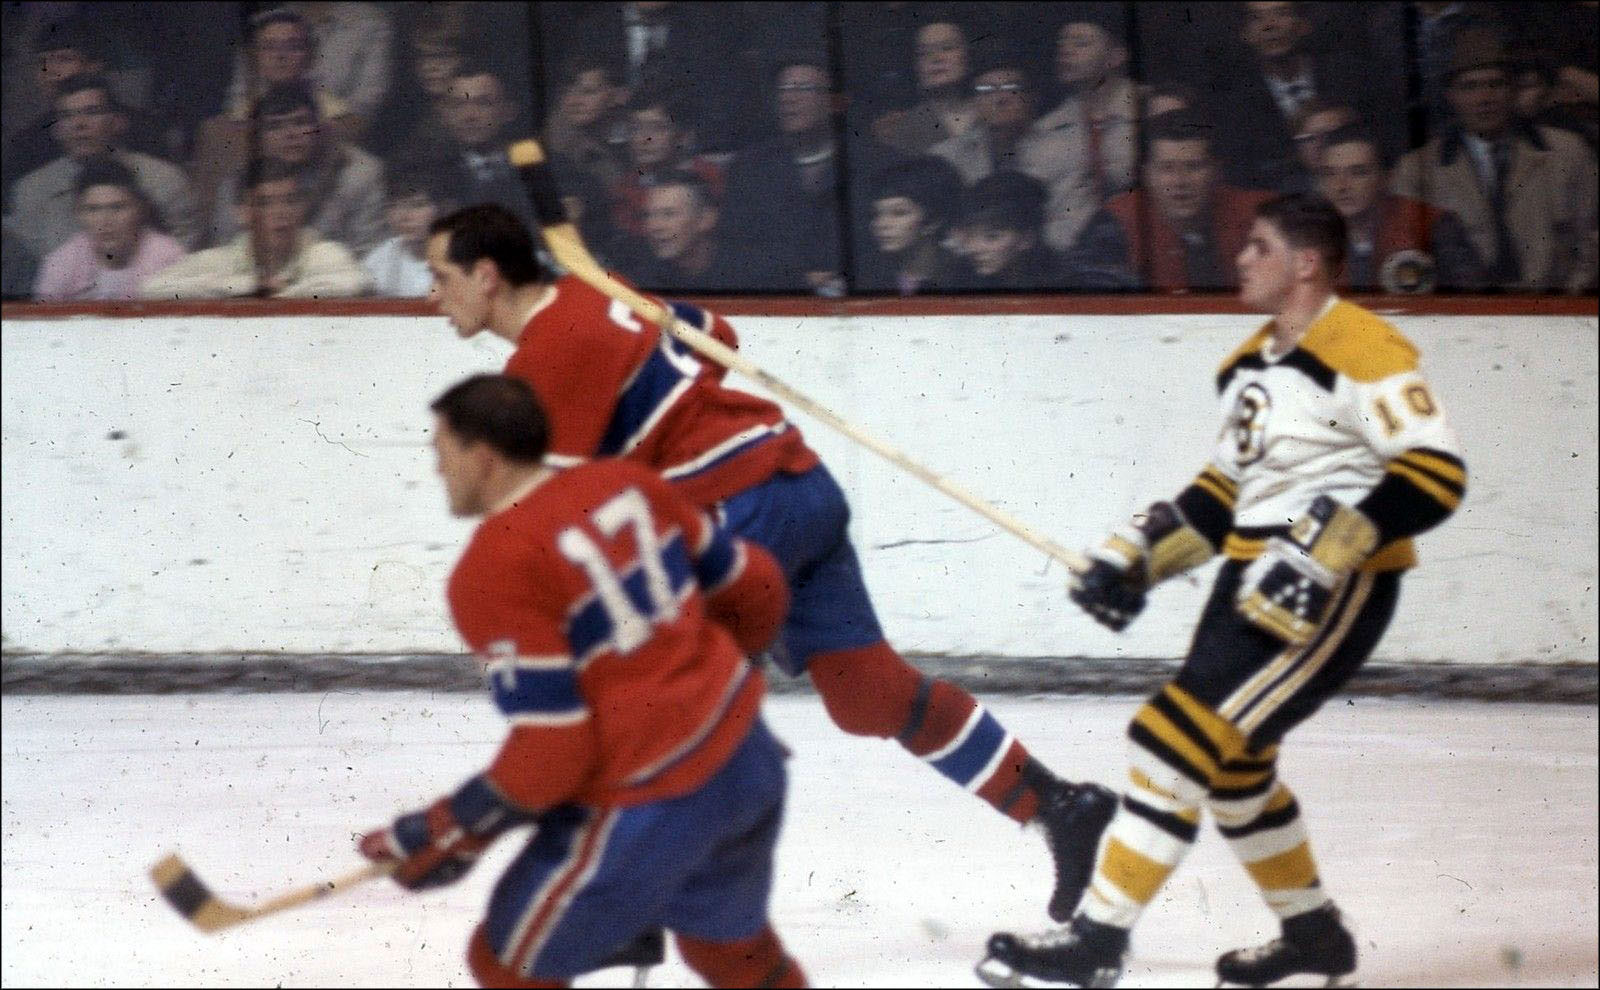 Boston Bruins vs. Montreal Canadiens, c. 1965-67